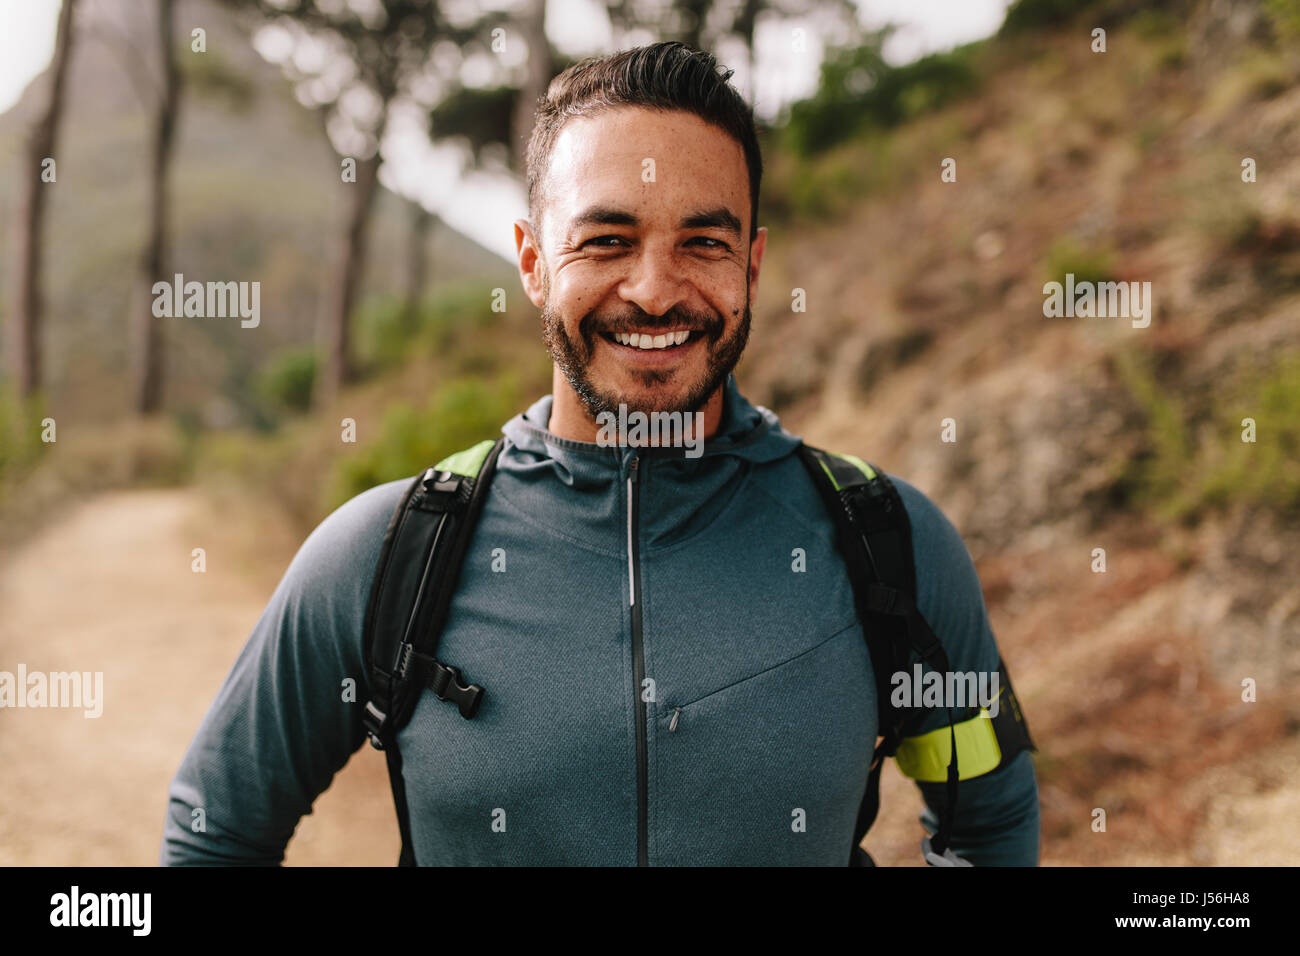 Portrait of healthy young caucasian man standing outdoors and smiling. Confident young male runner on country road. Stock Photo